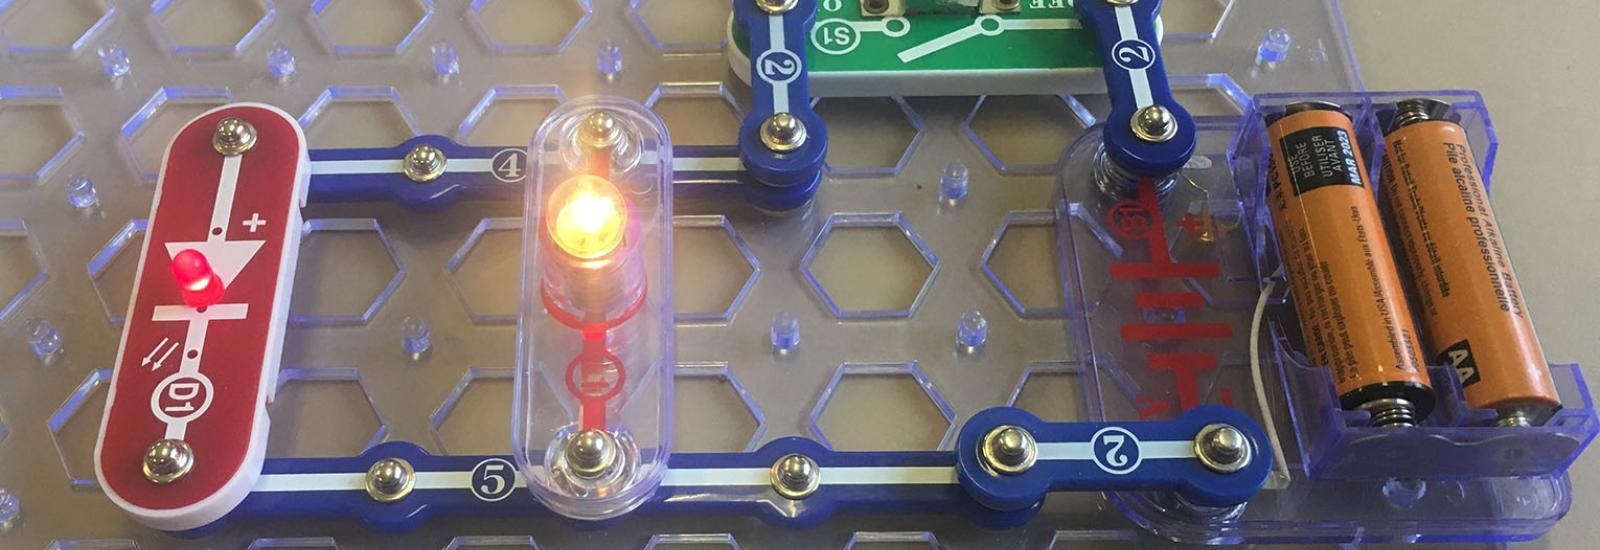 Photograph of a closed parallel circuit created using snap circuits, an LED diode, light bulb, switch, and batteries.